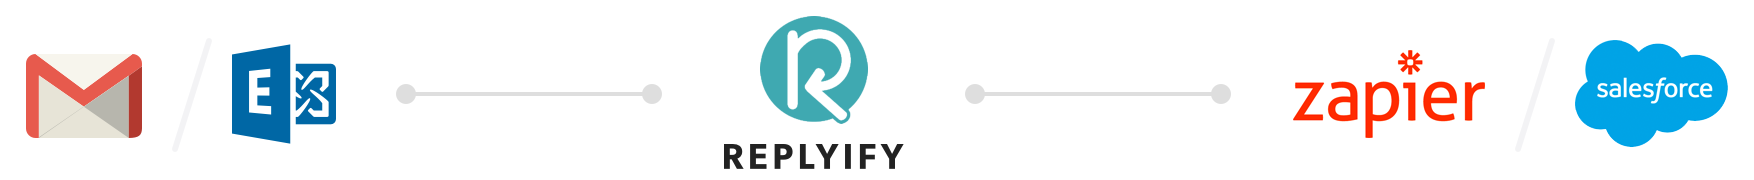 Illustrating one-click integration with Replyify